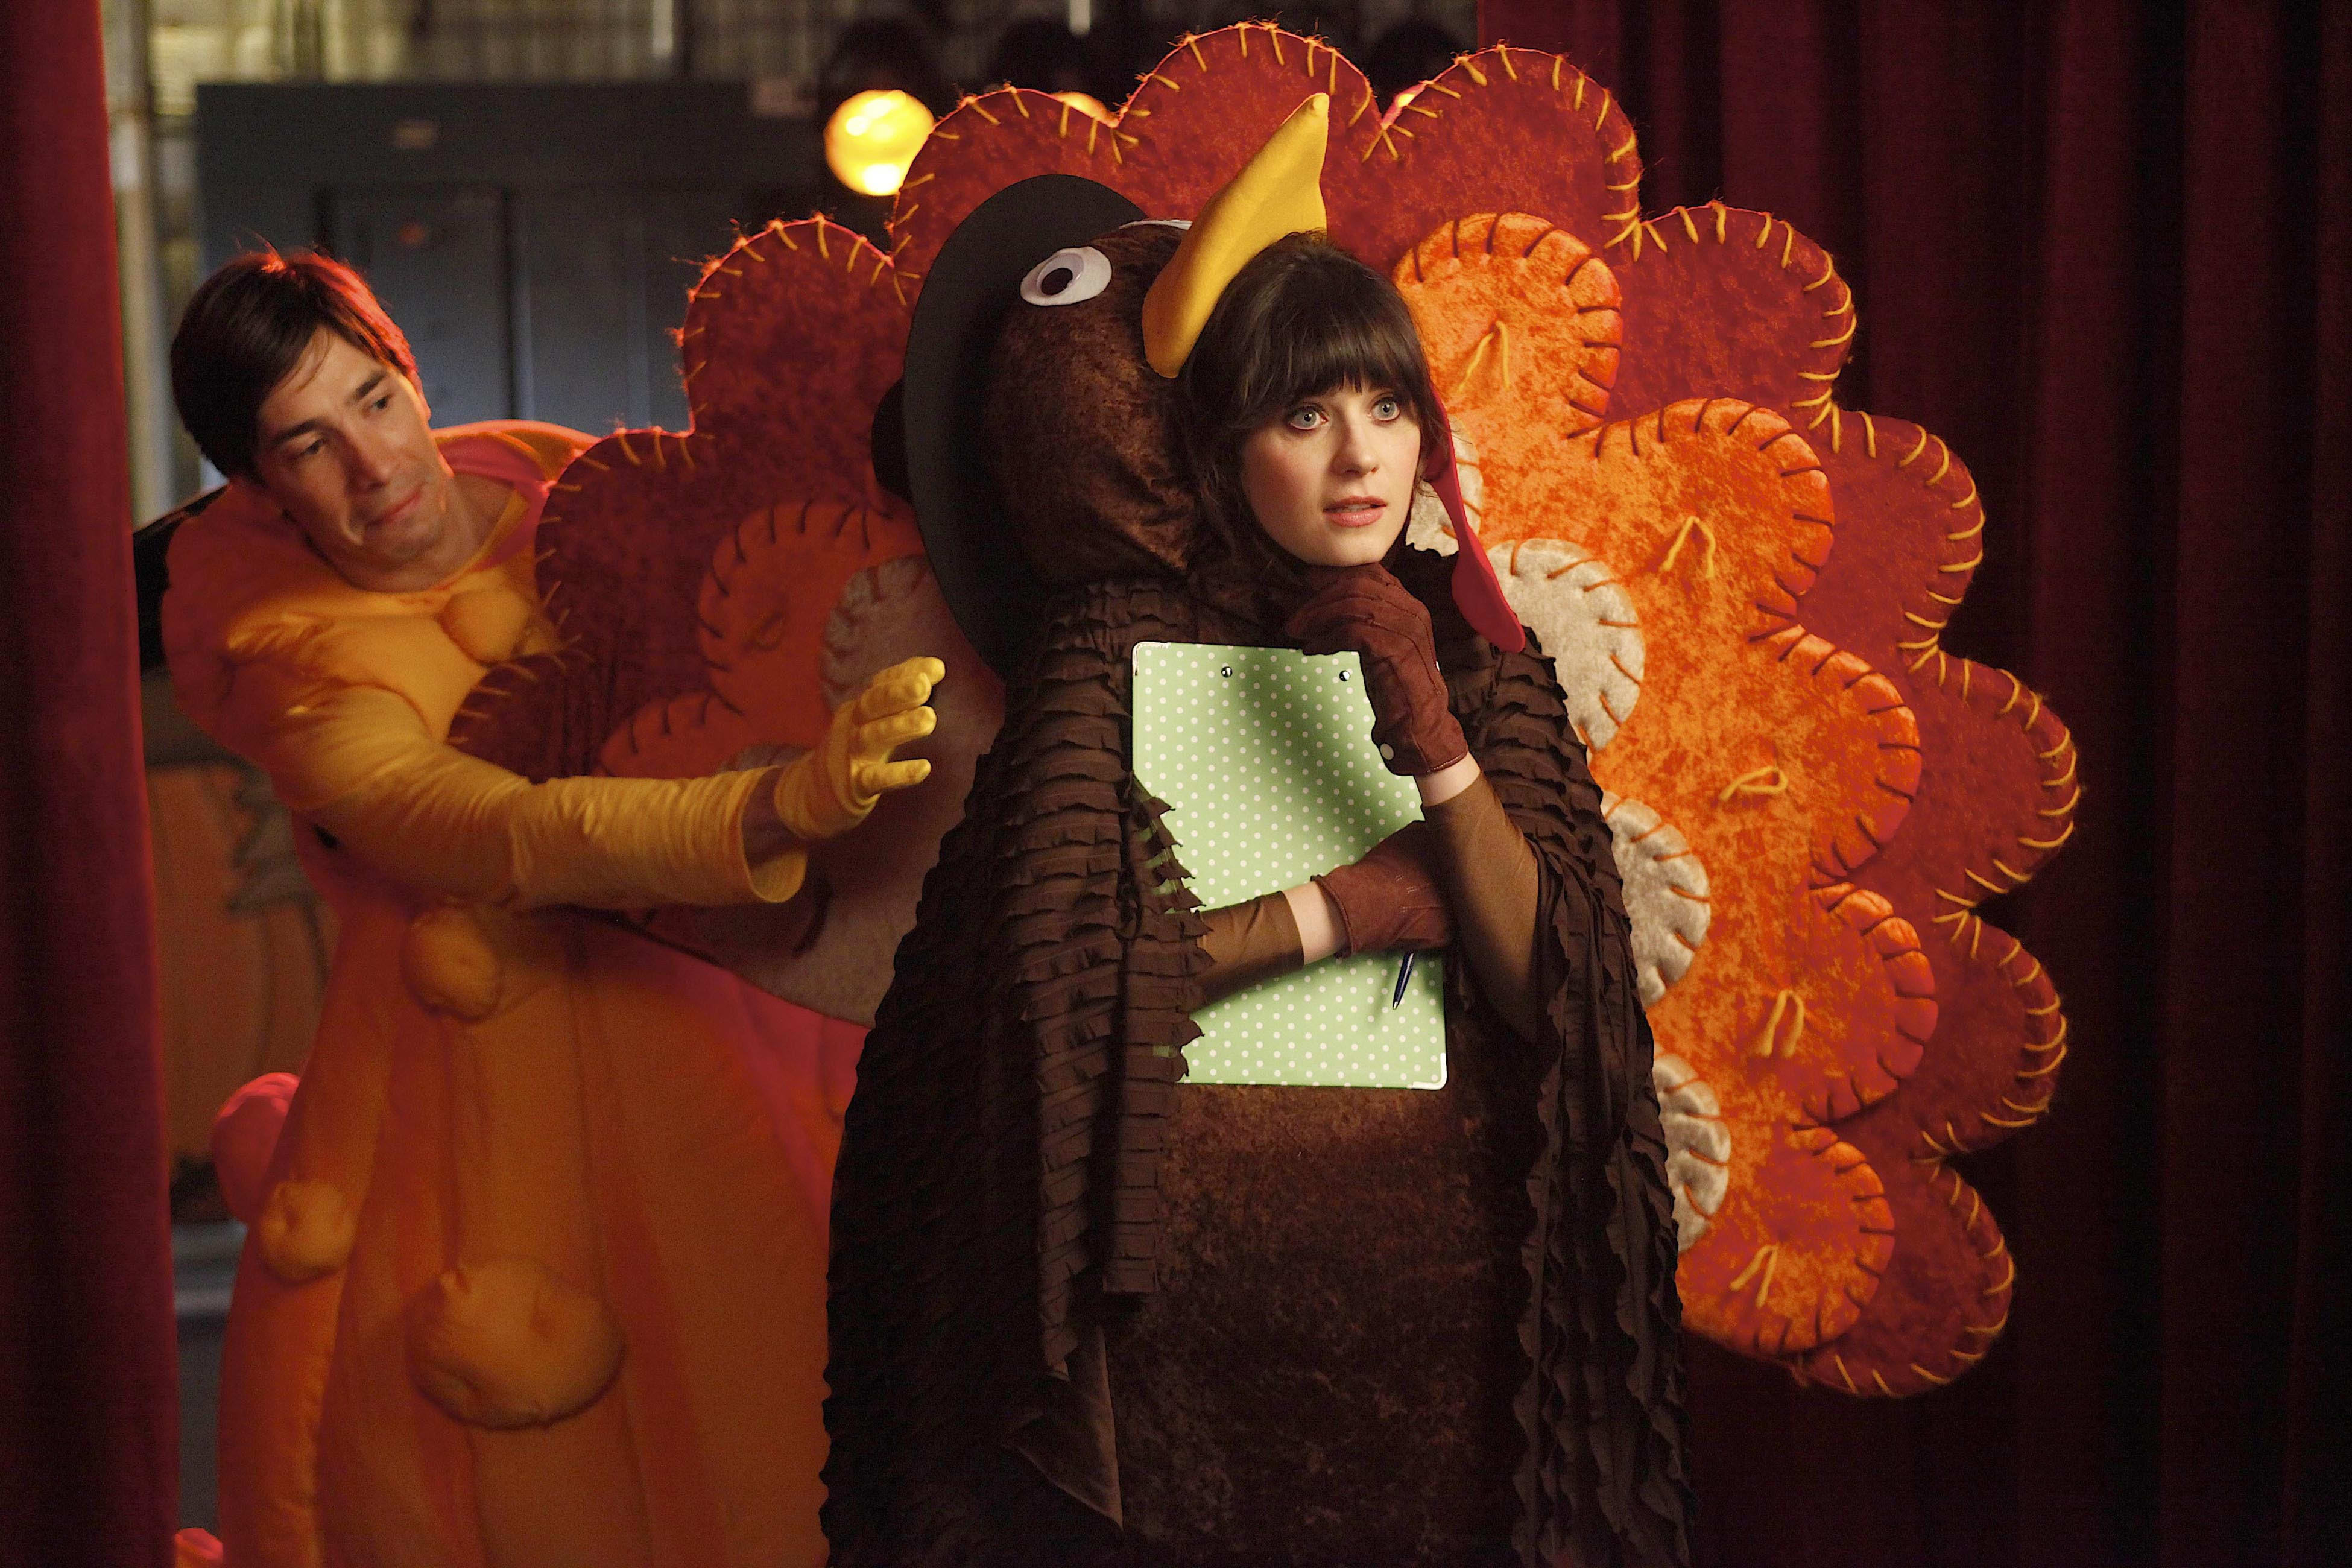 Watch Holiday Movies Online What Thanksgiving Movies Tv Episodes Are On Netflix